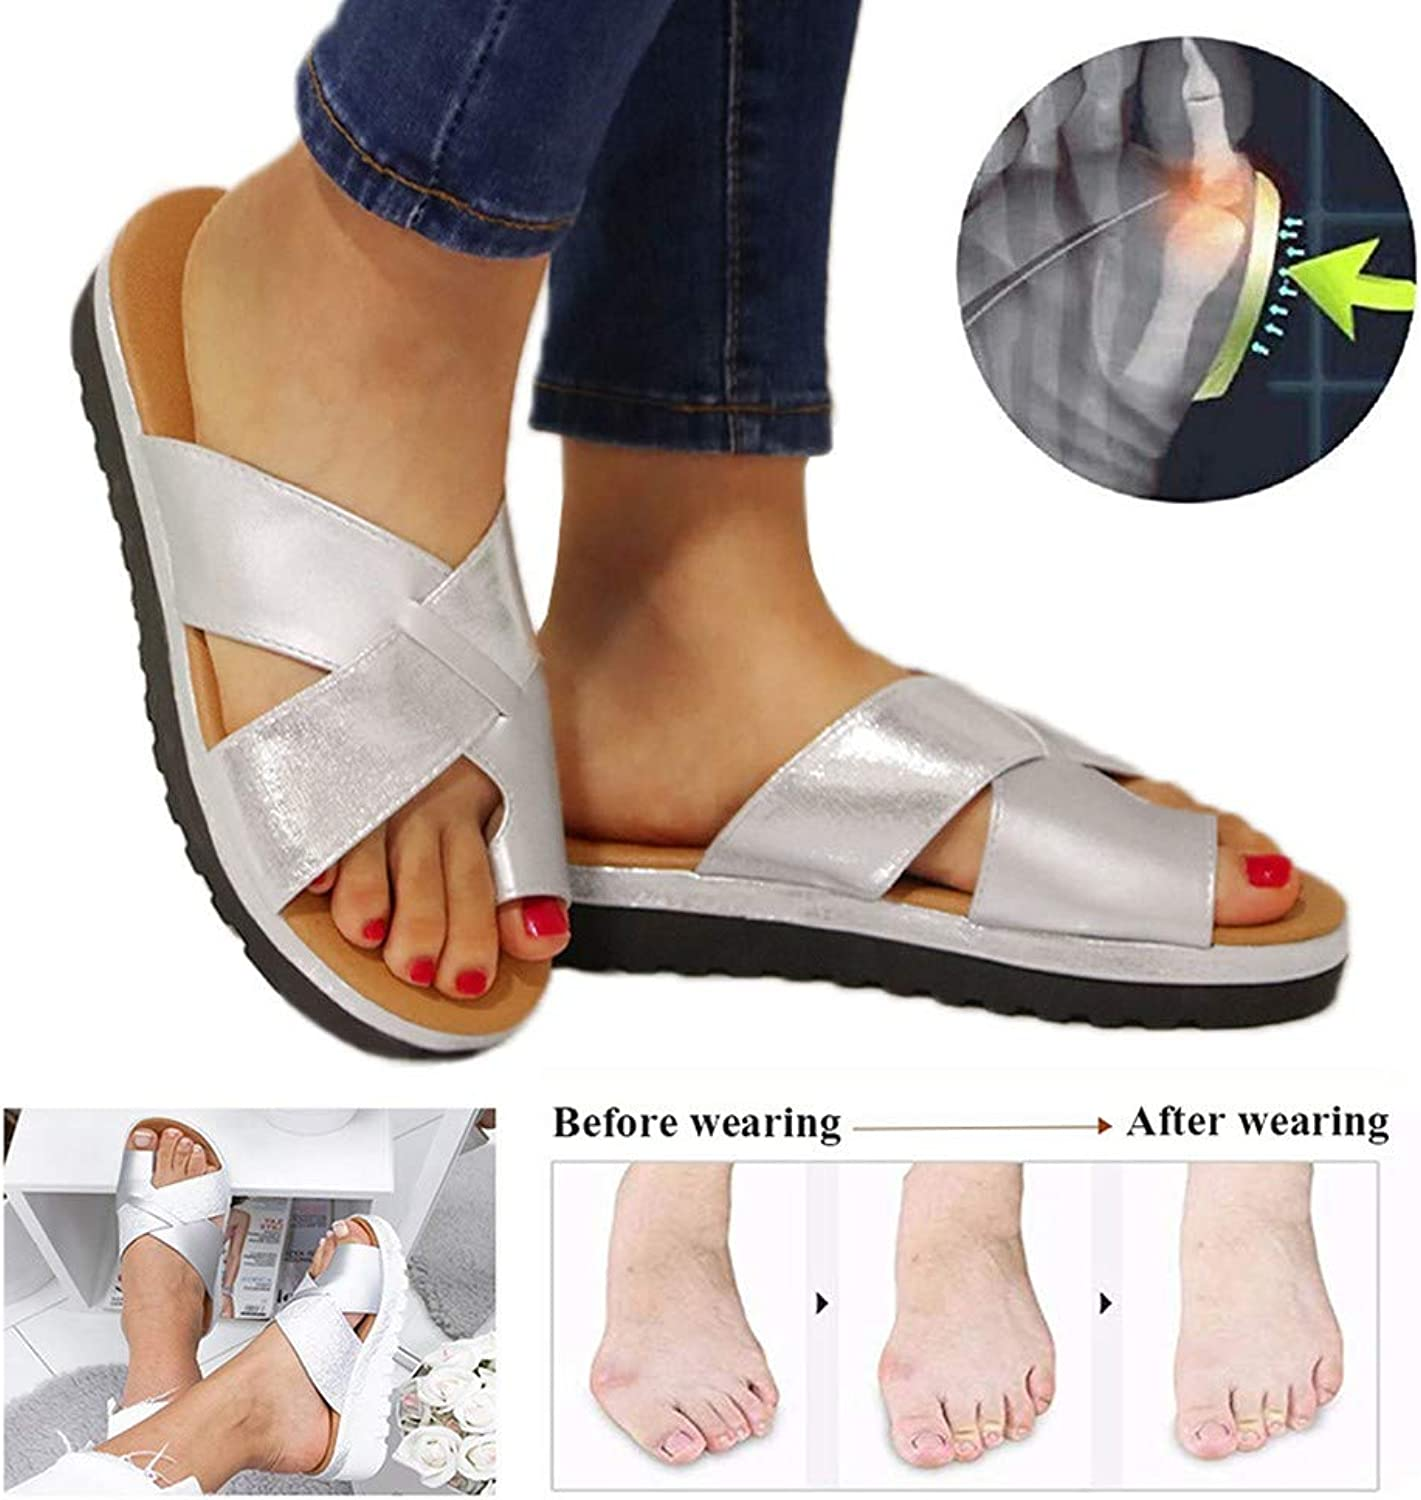 Foot Correction Sandals Summer Women shoes Flat Sole PU Leather Slippers Non Slip Wear Resistant Comfortable Slippers for Orthopedic Big Toe Bone Correction Beach Travel,Silver,36